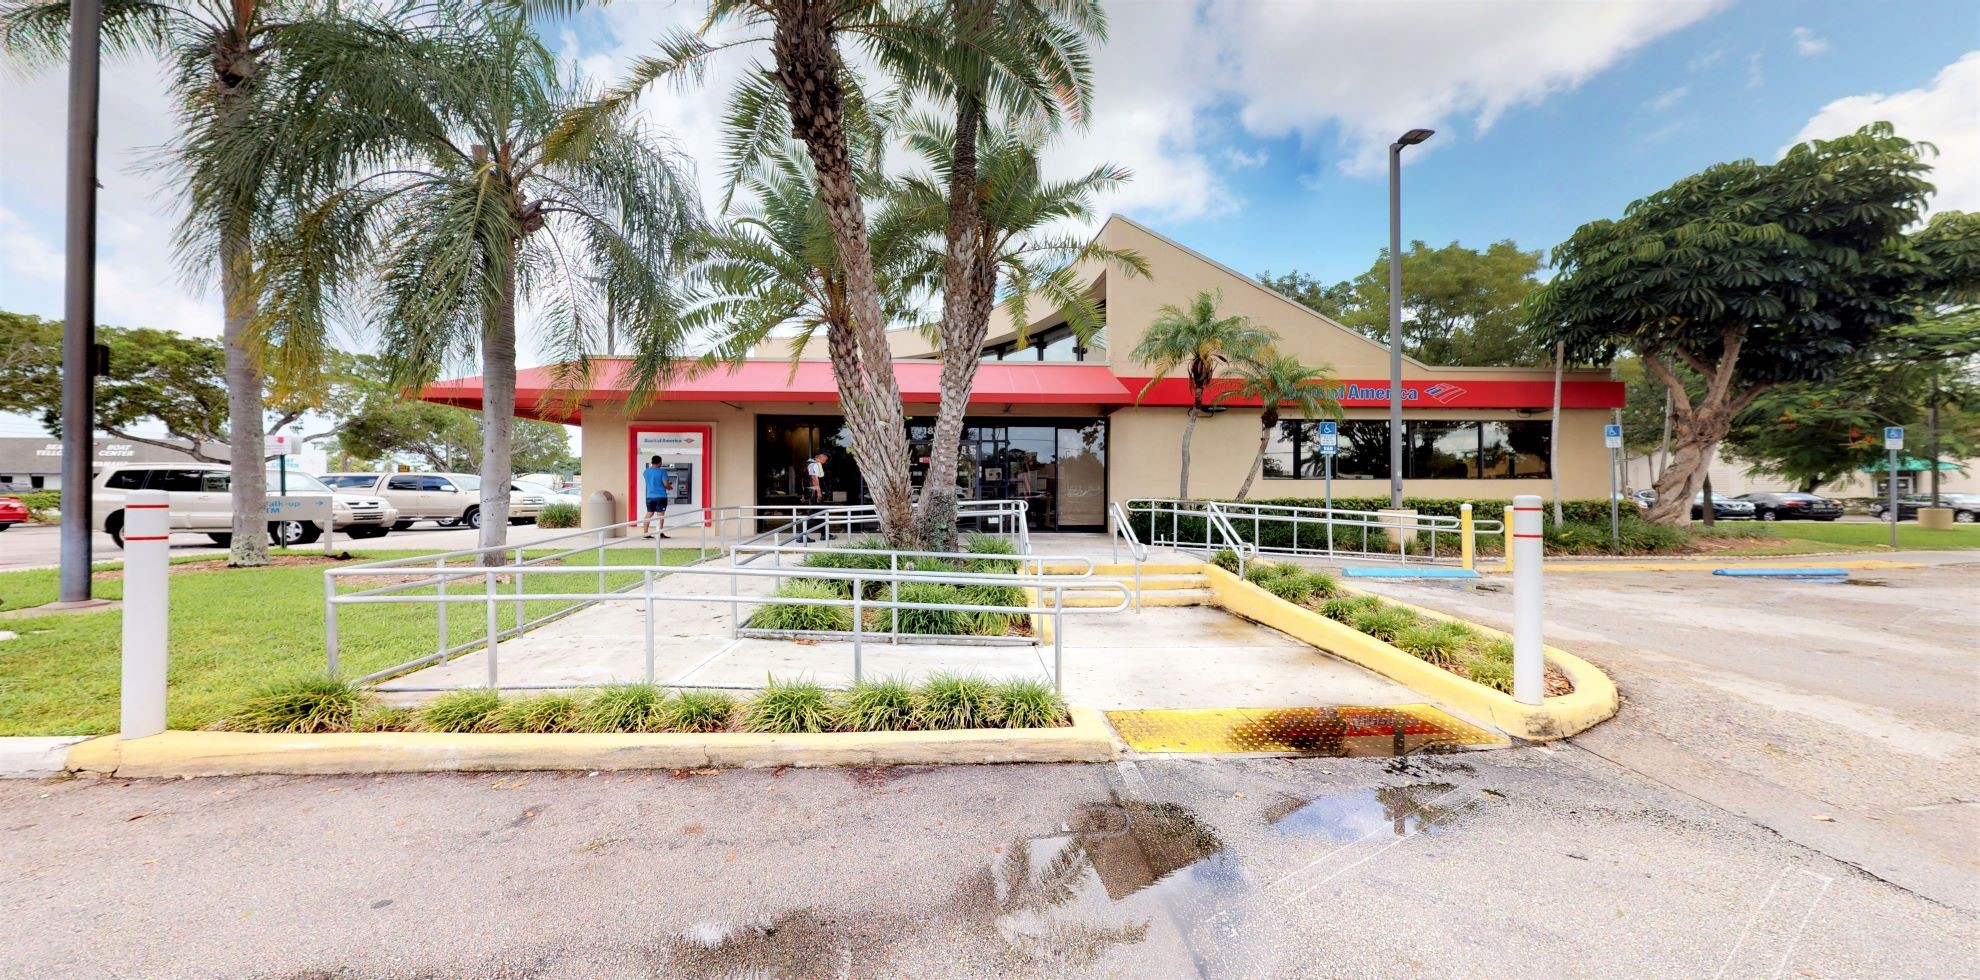 Bank of America financial center with drive-thru ATM and teller | 18341 S Dixie Hwy, Perrine, FL 33157